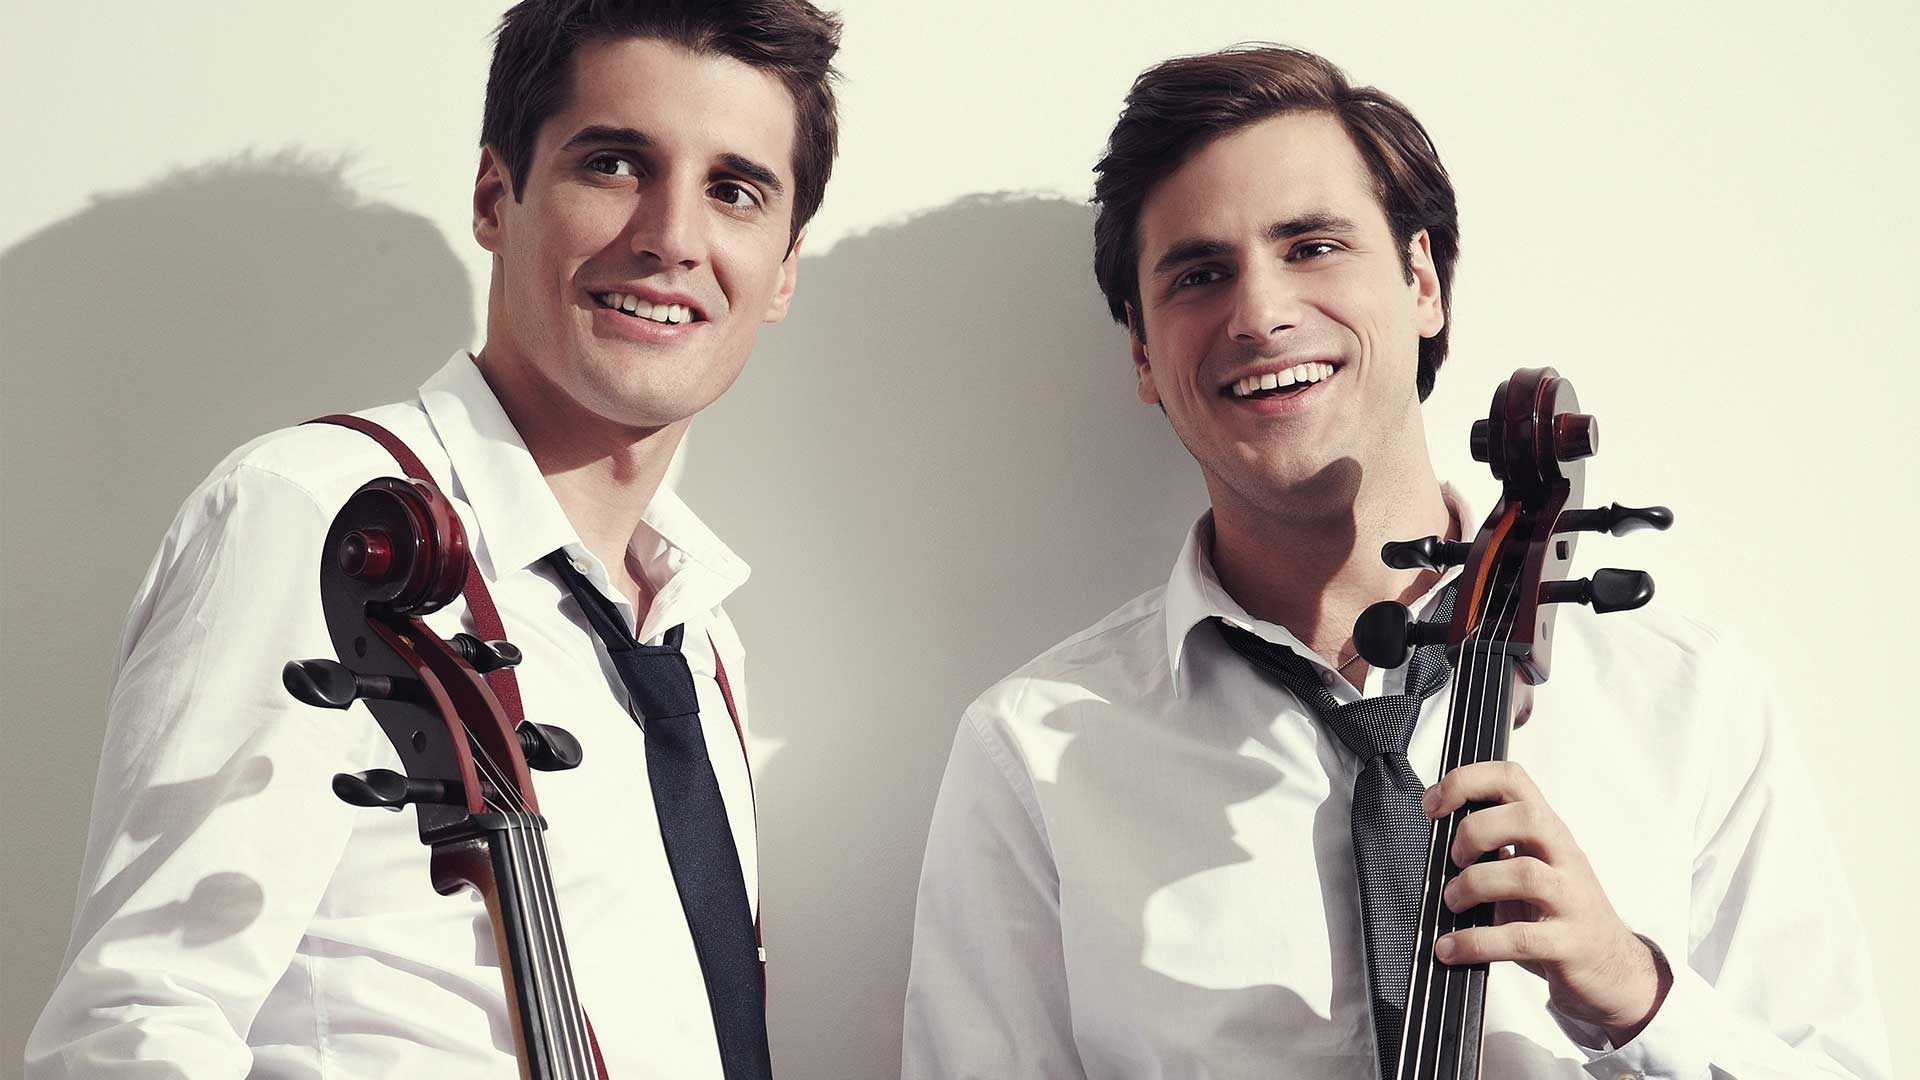 2Cellos Live at Arena Zagreb - Twin Cities PBS